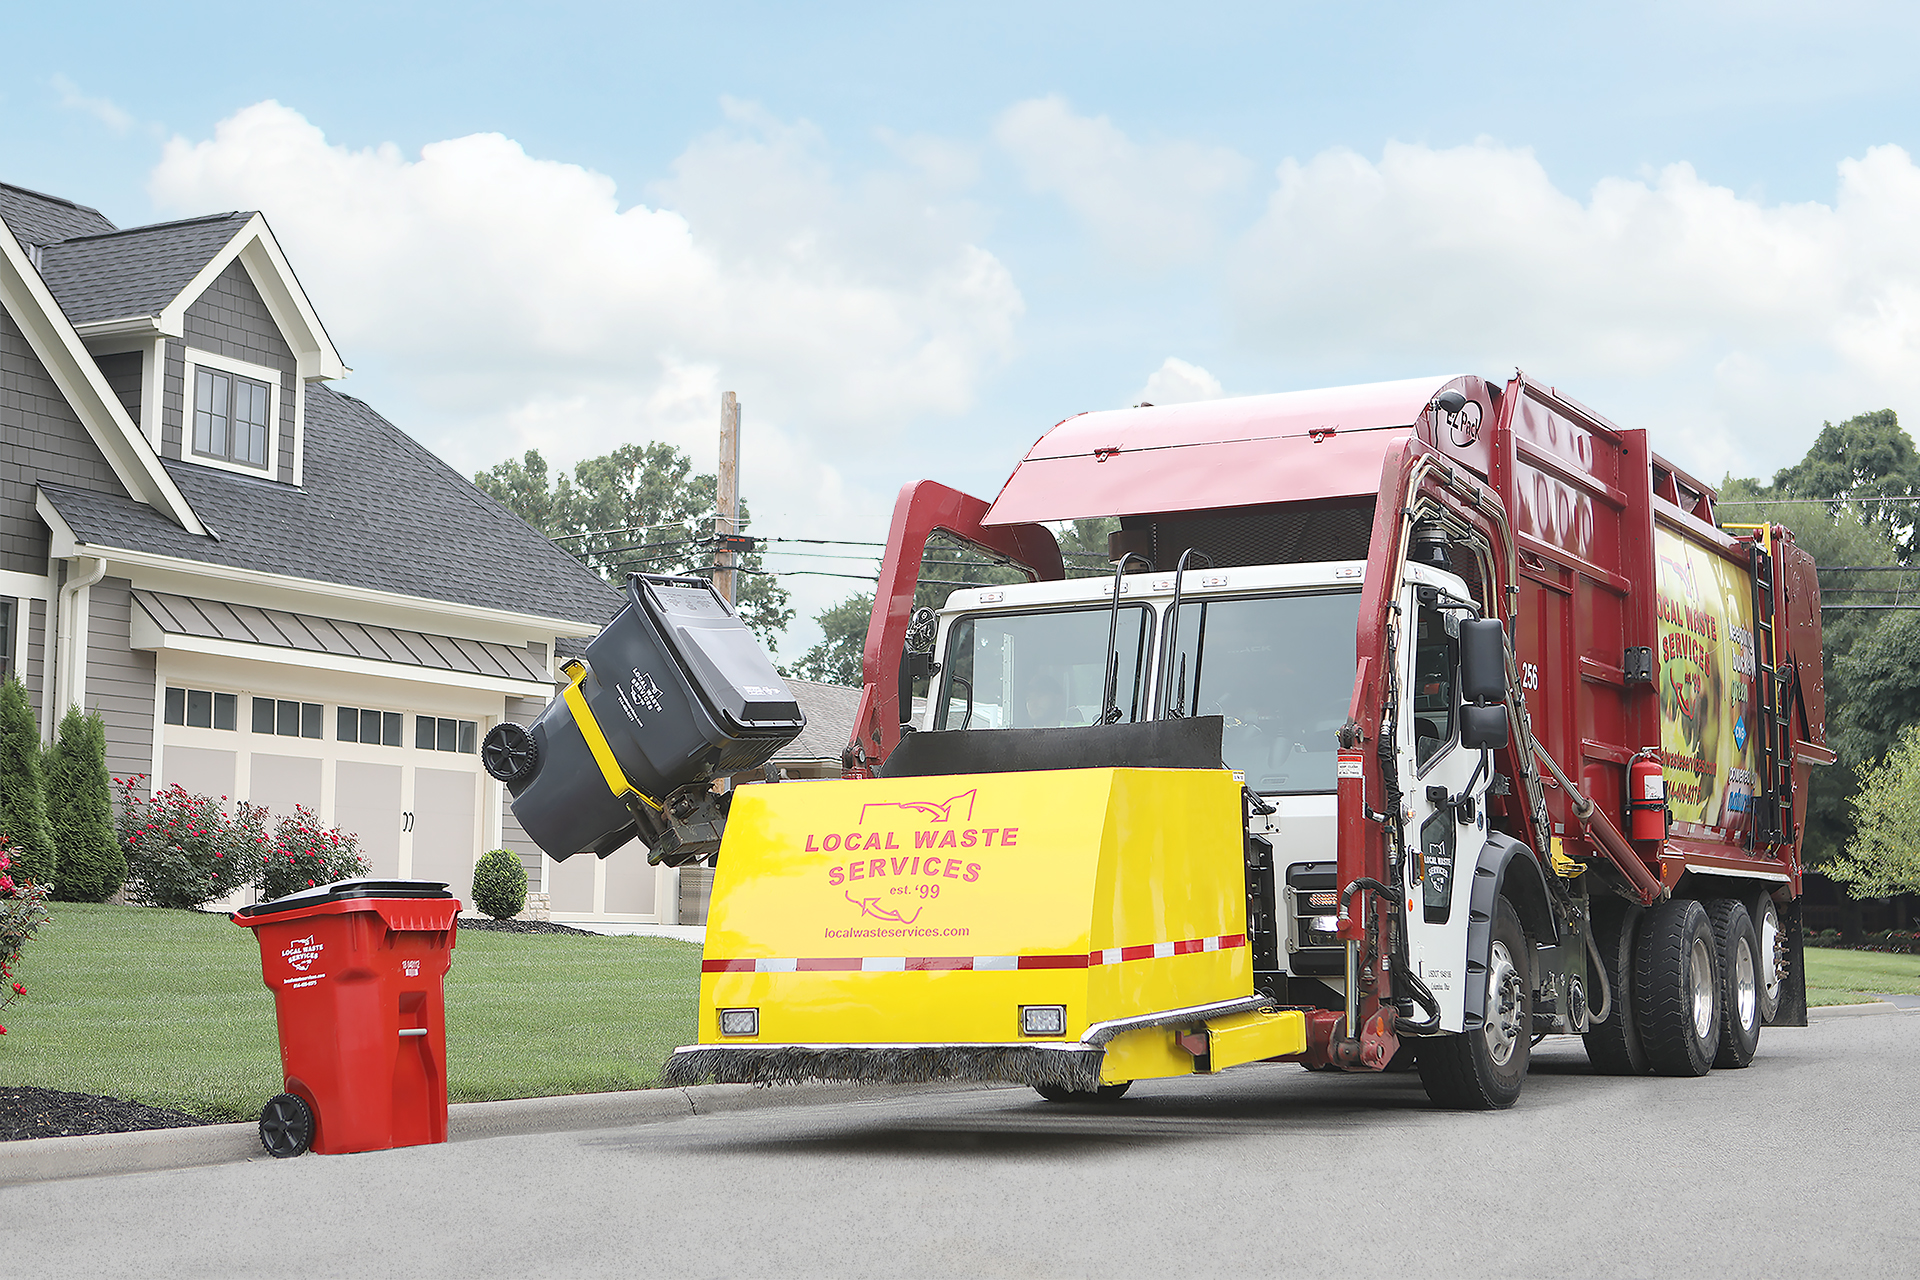 RESIDENTIAL - Offering 35, 65 and 95 gallon carts for solid waste, recycling and yard waste. 18 gallon recycling bins also available.